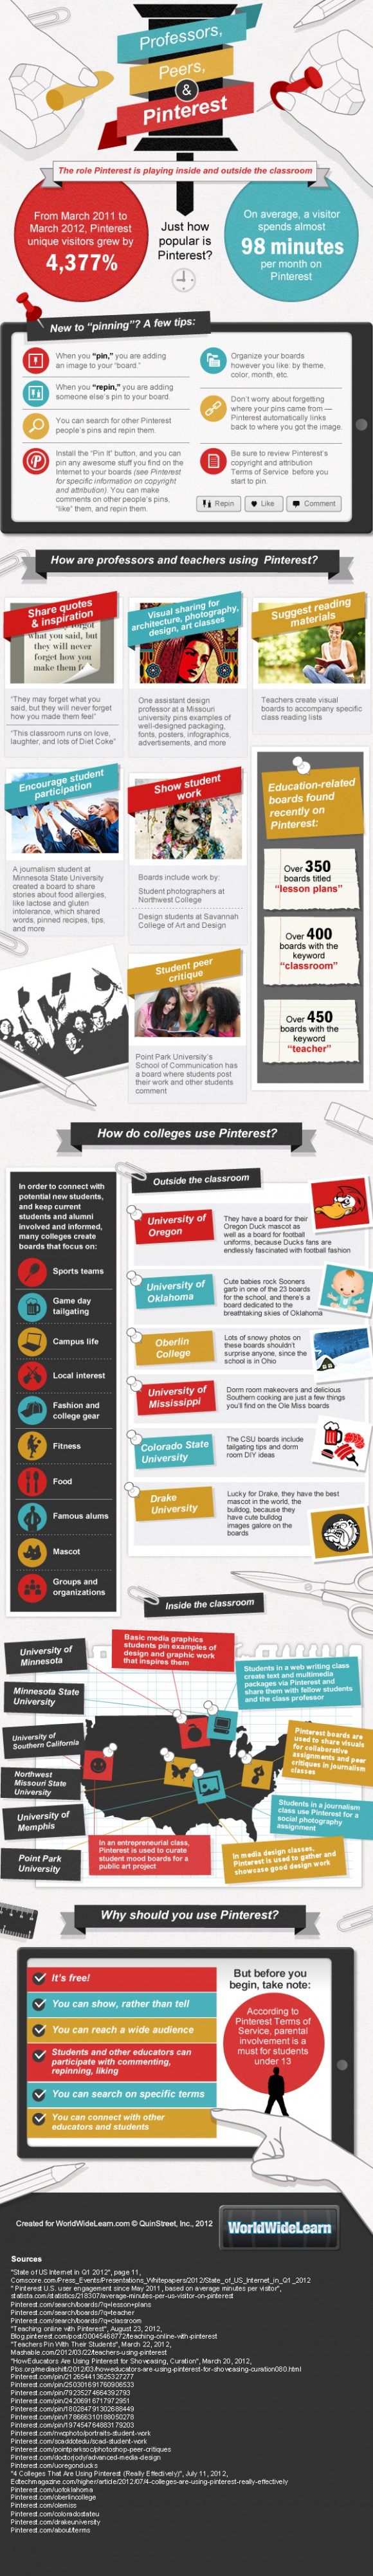 Educators Guide To Pinterest